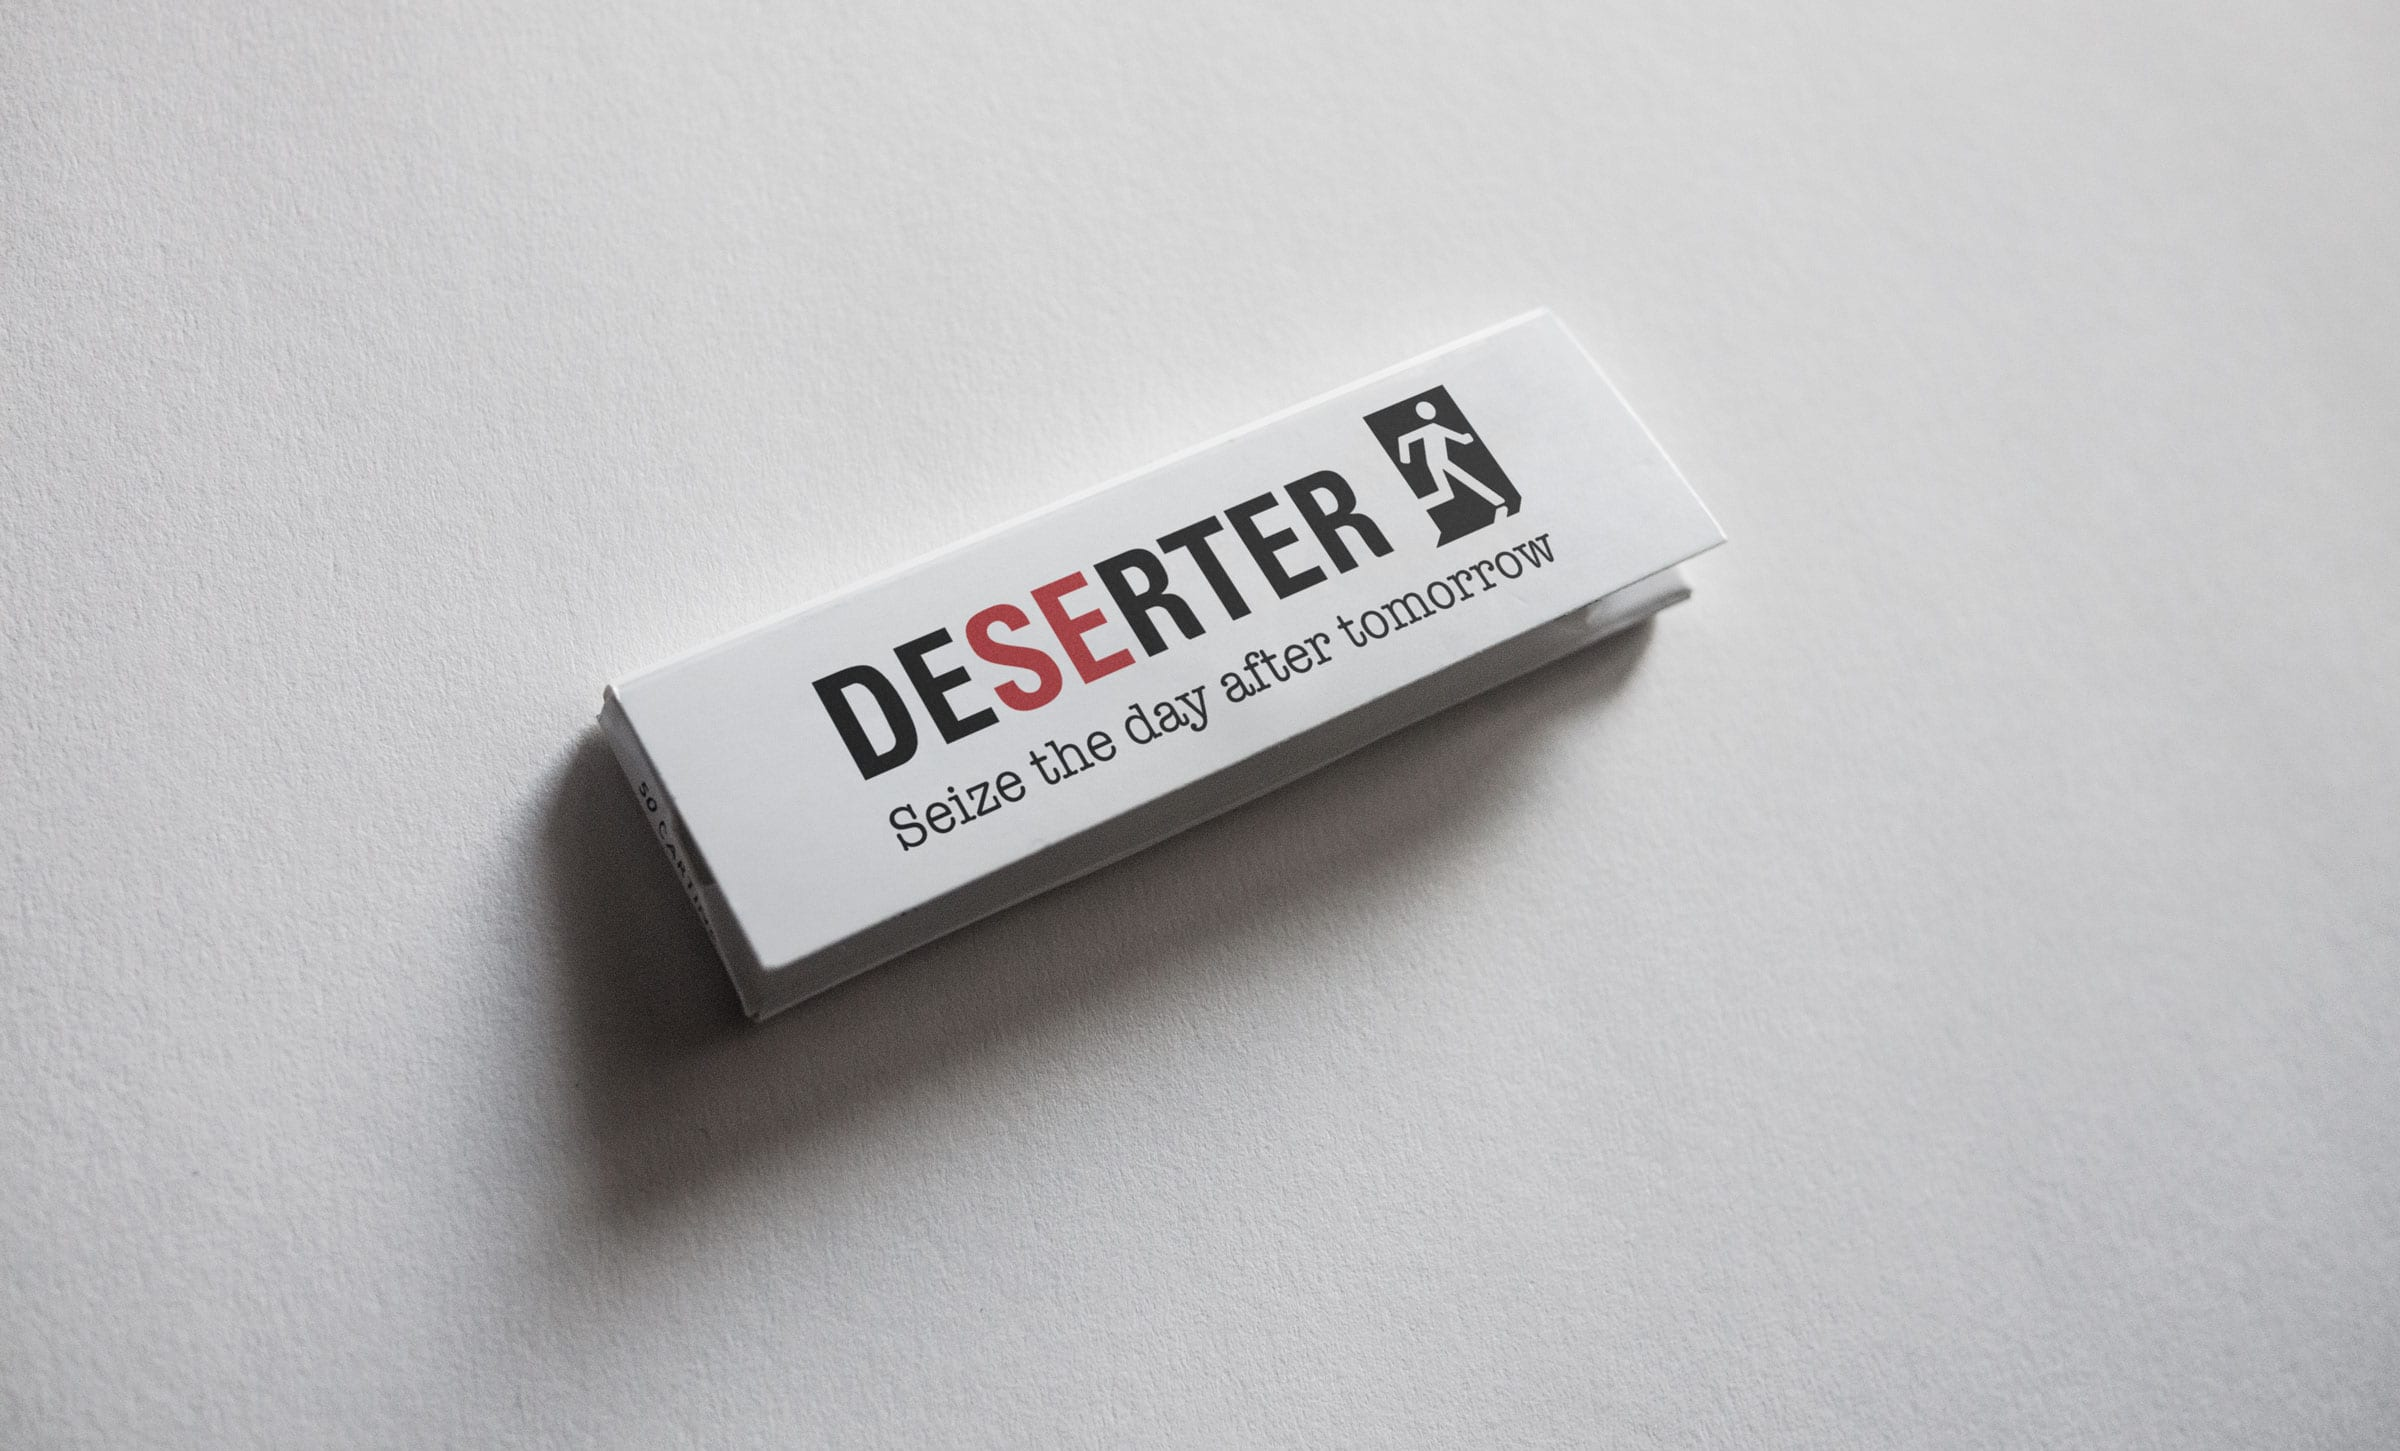 Deserter rolling papers